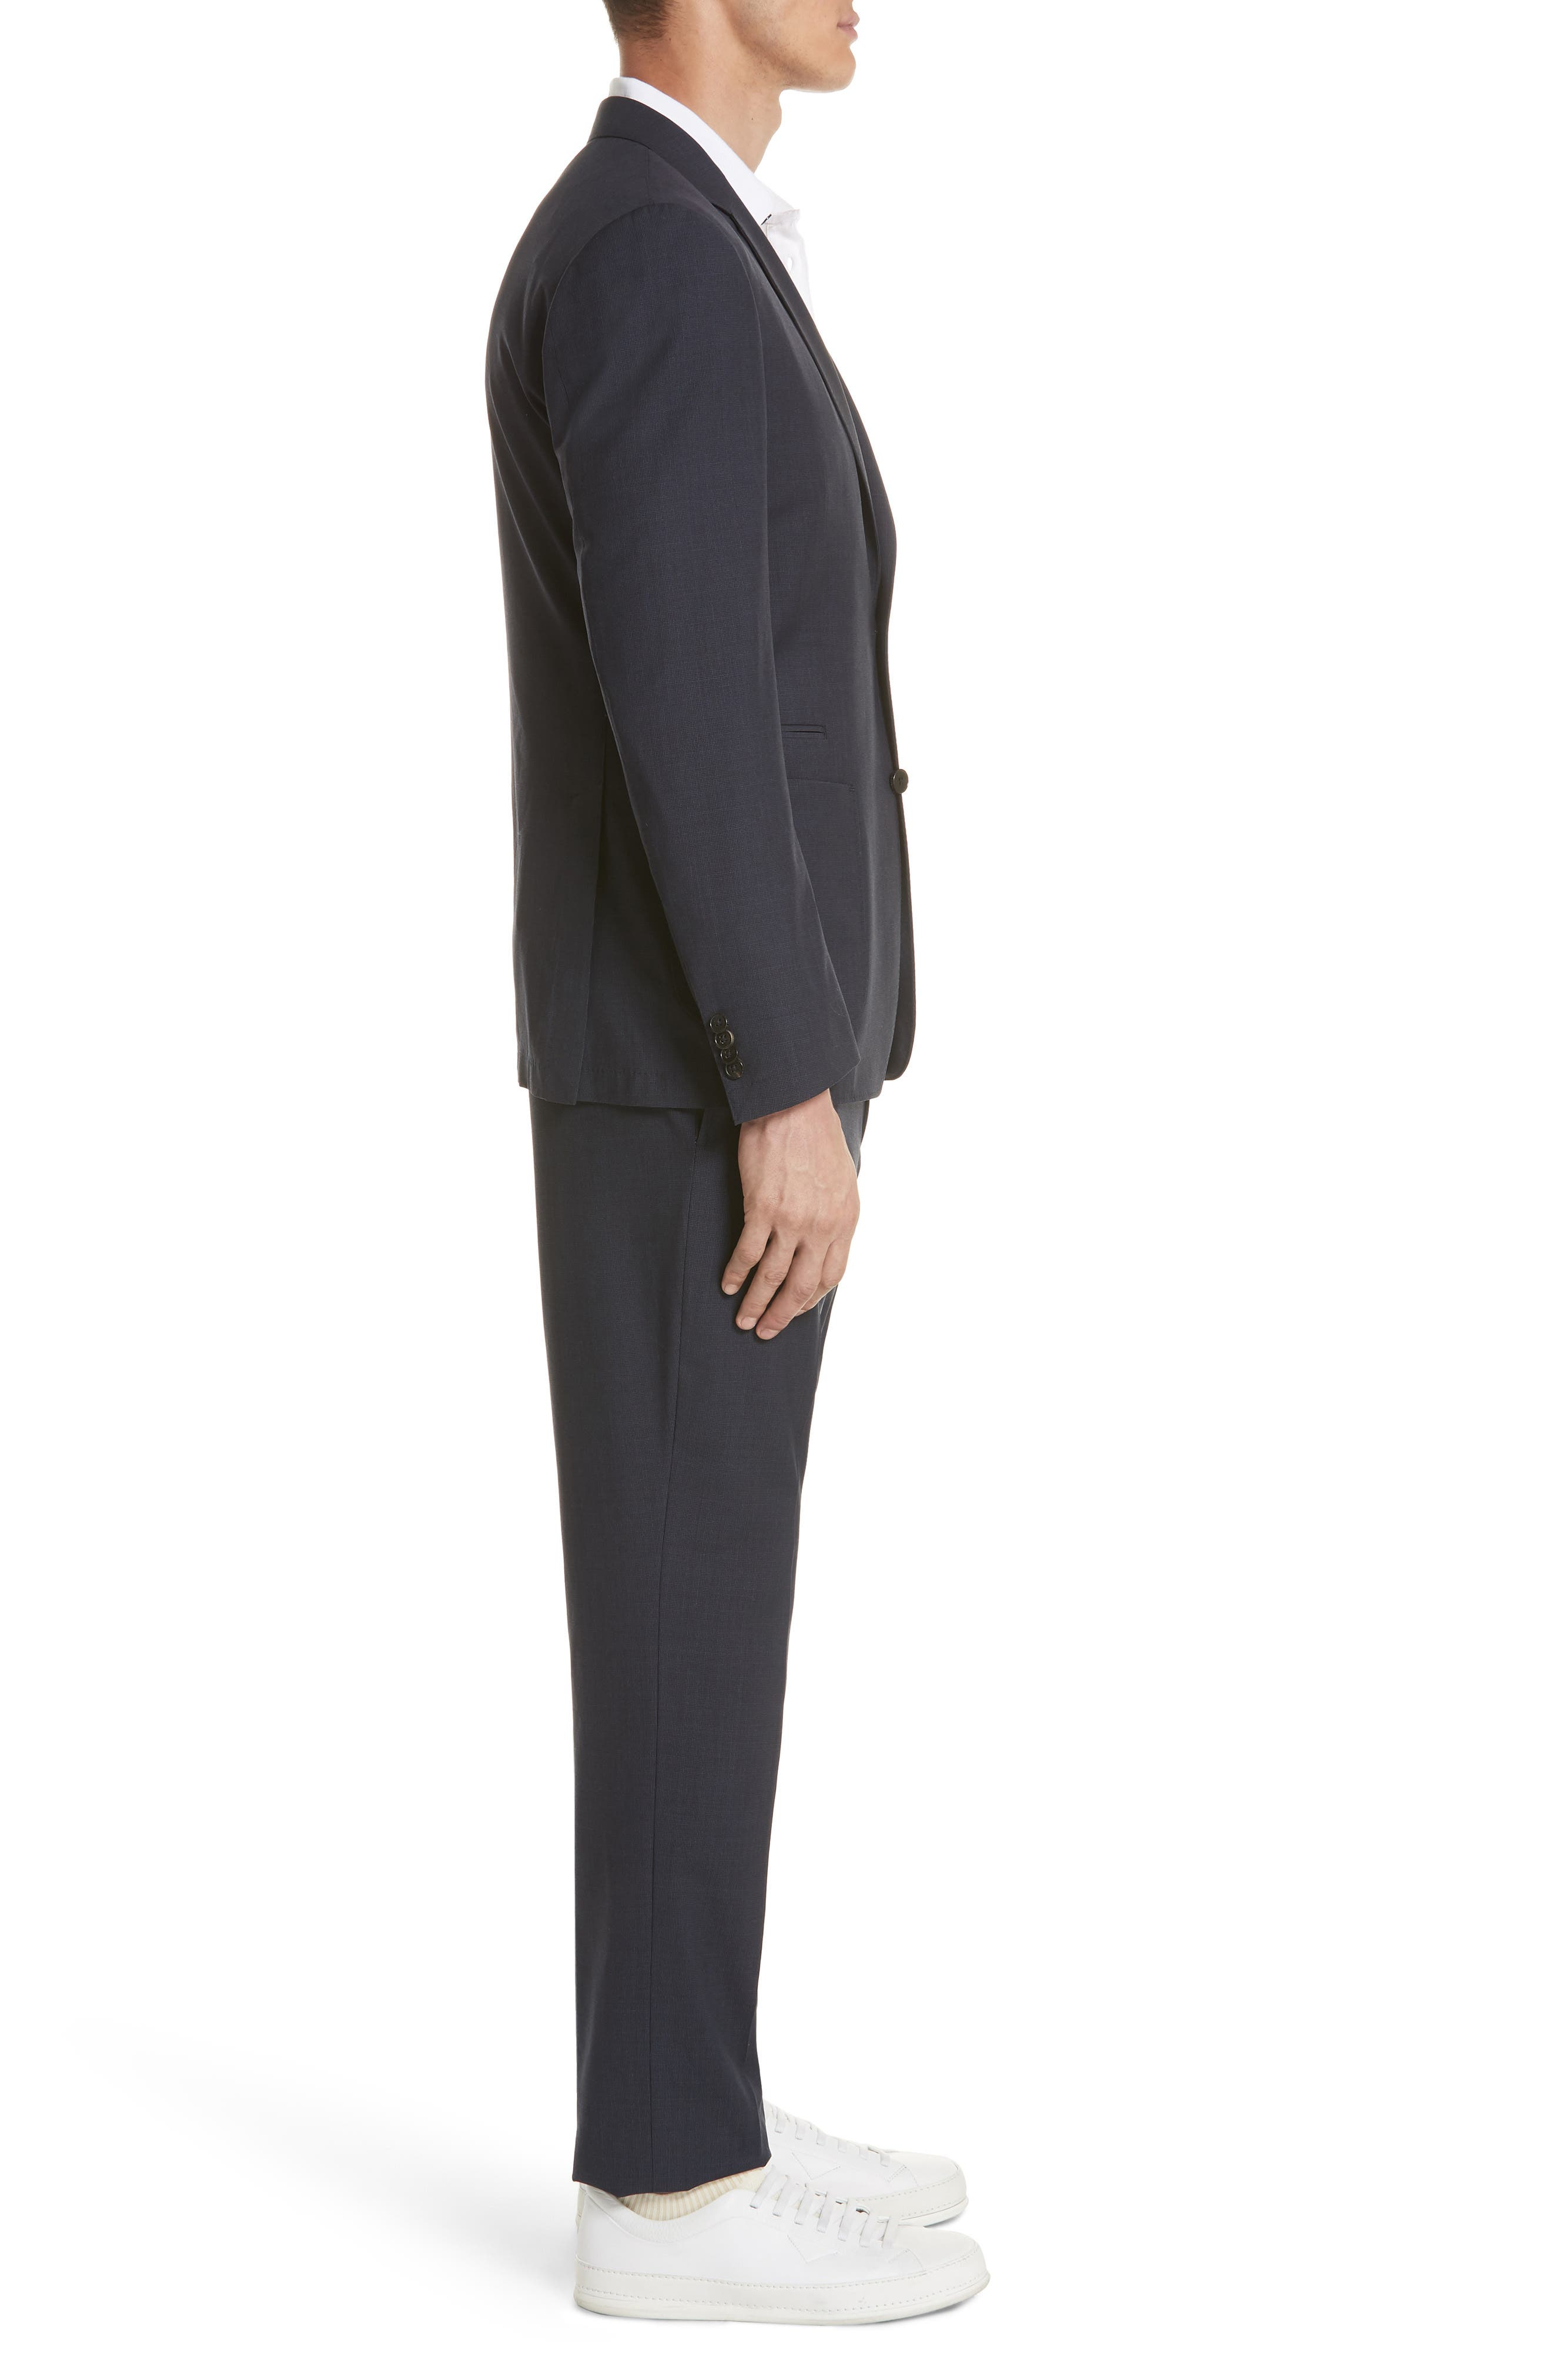 TECHMERINO<sup>™</sup> Wash & Go Trim Fit Solid Wool Suit,                             Alternate thumbnail 3, color,                             412